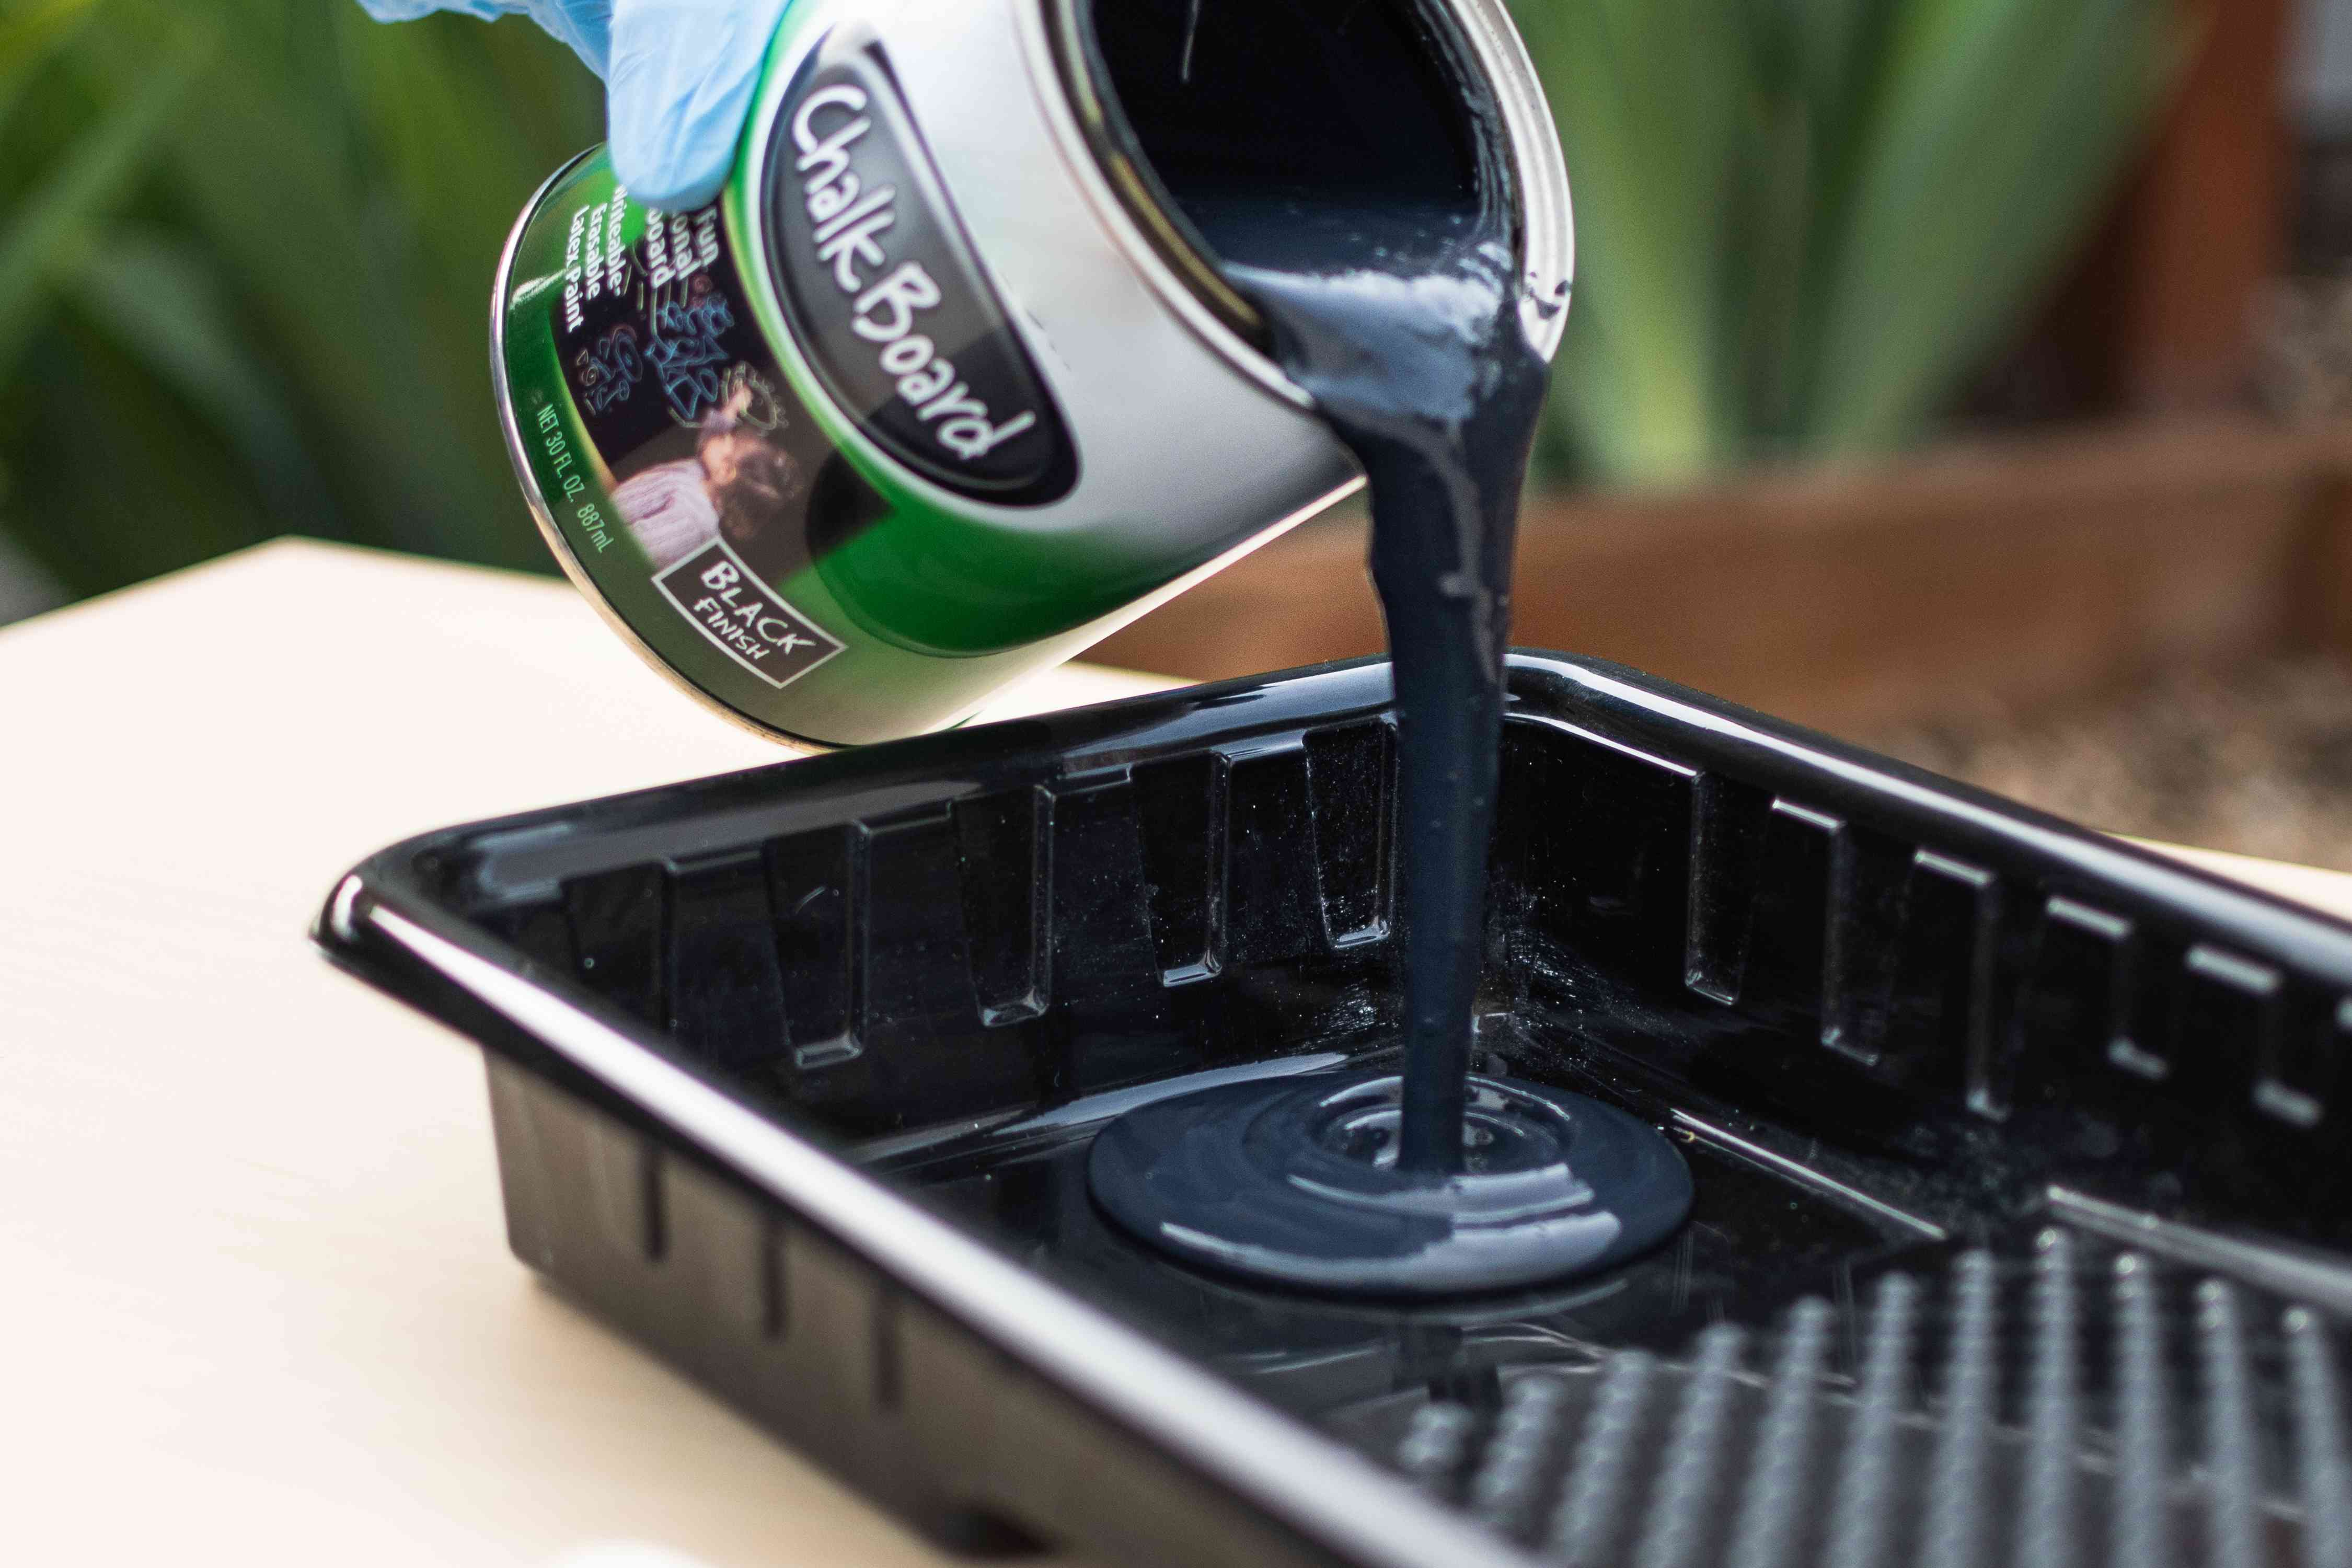 Black chalkboard paint poured into paint tray